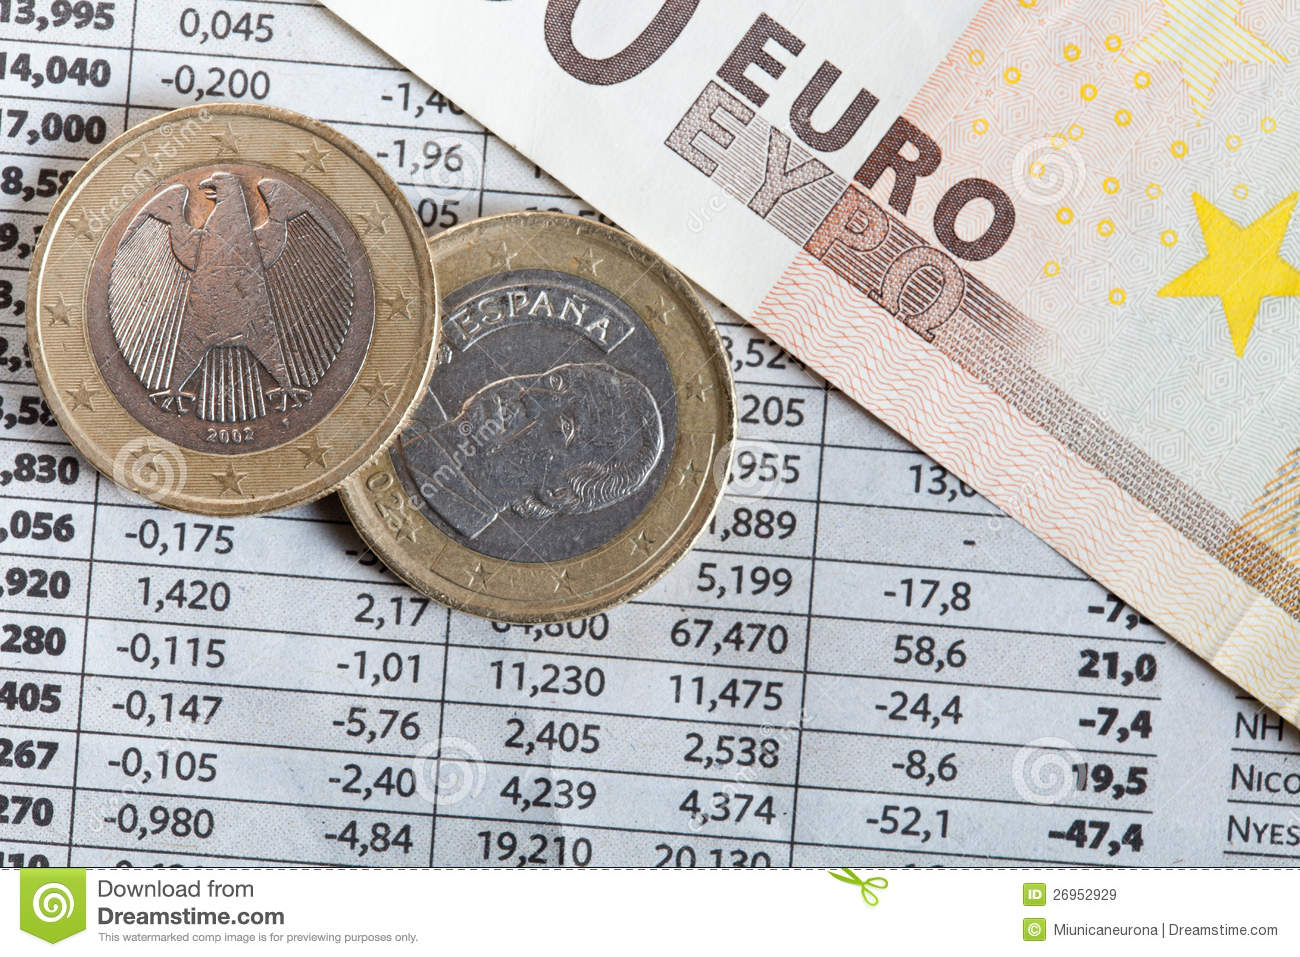 Euro coins and stock exchange results